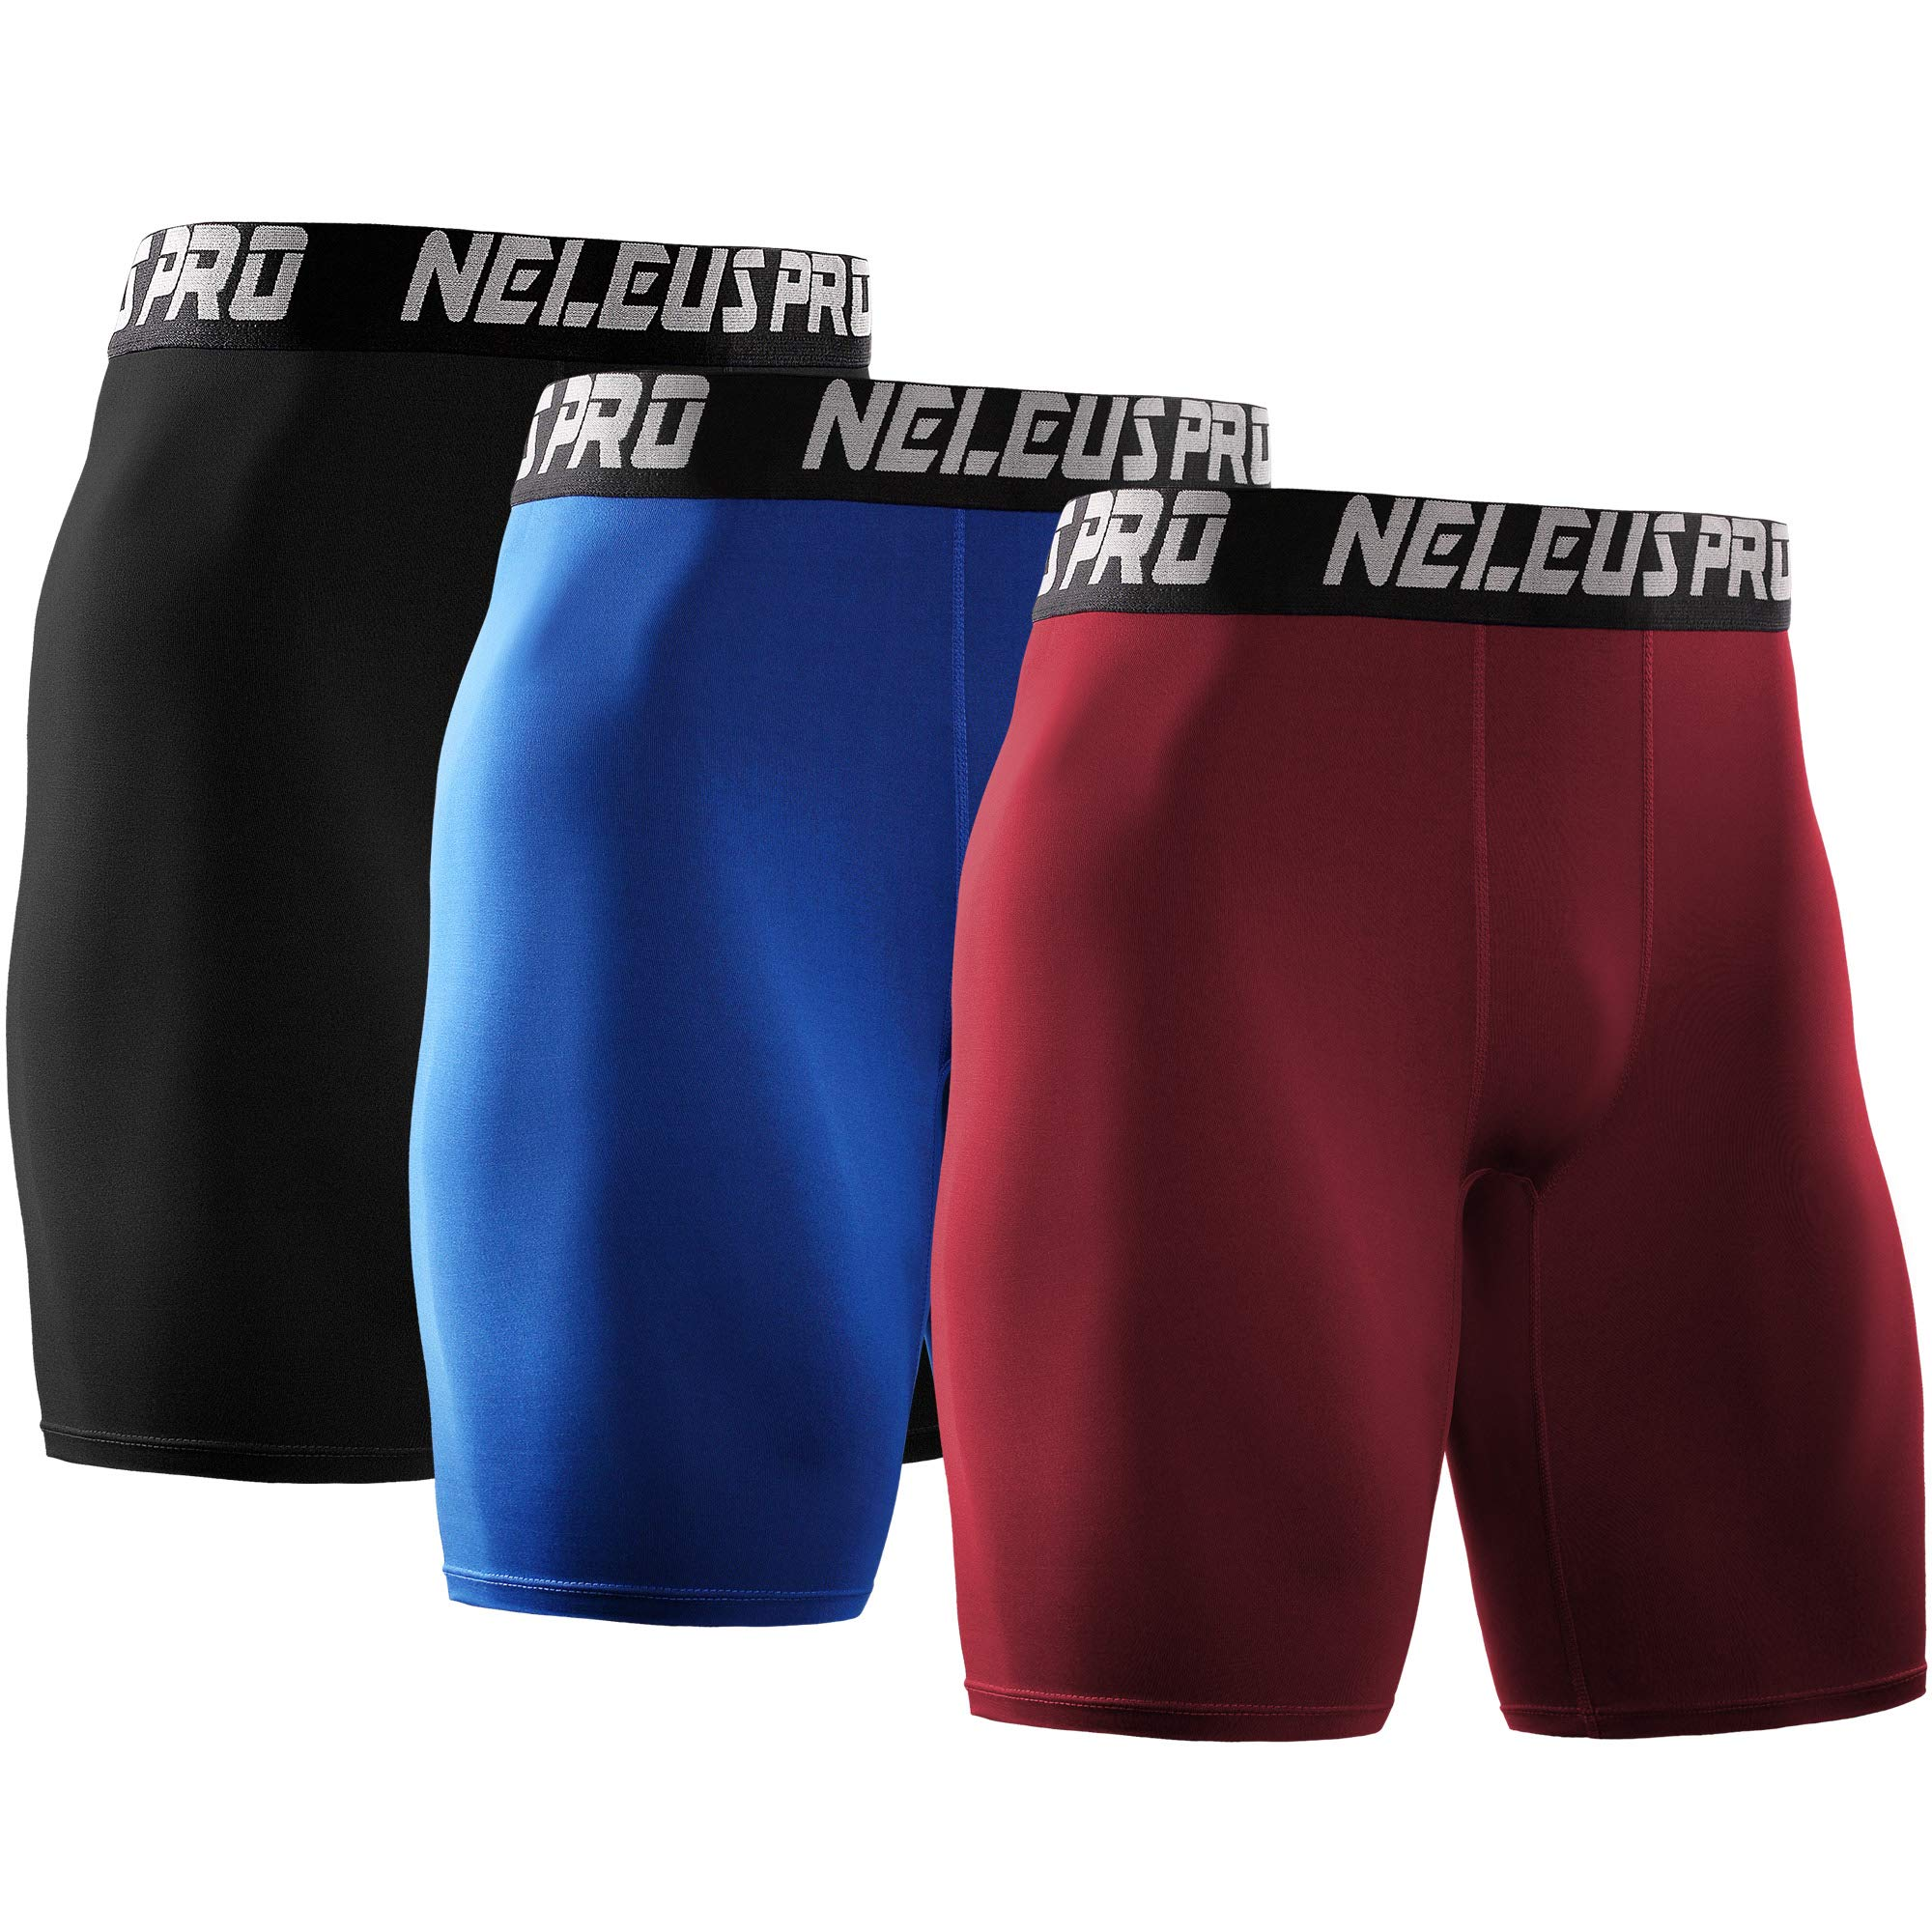 Neleus Men's 3 Pack Athletic Compression Short,6028,Black,Blue,Red,US XL,EU 2XL by Neleus